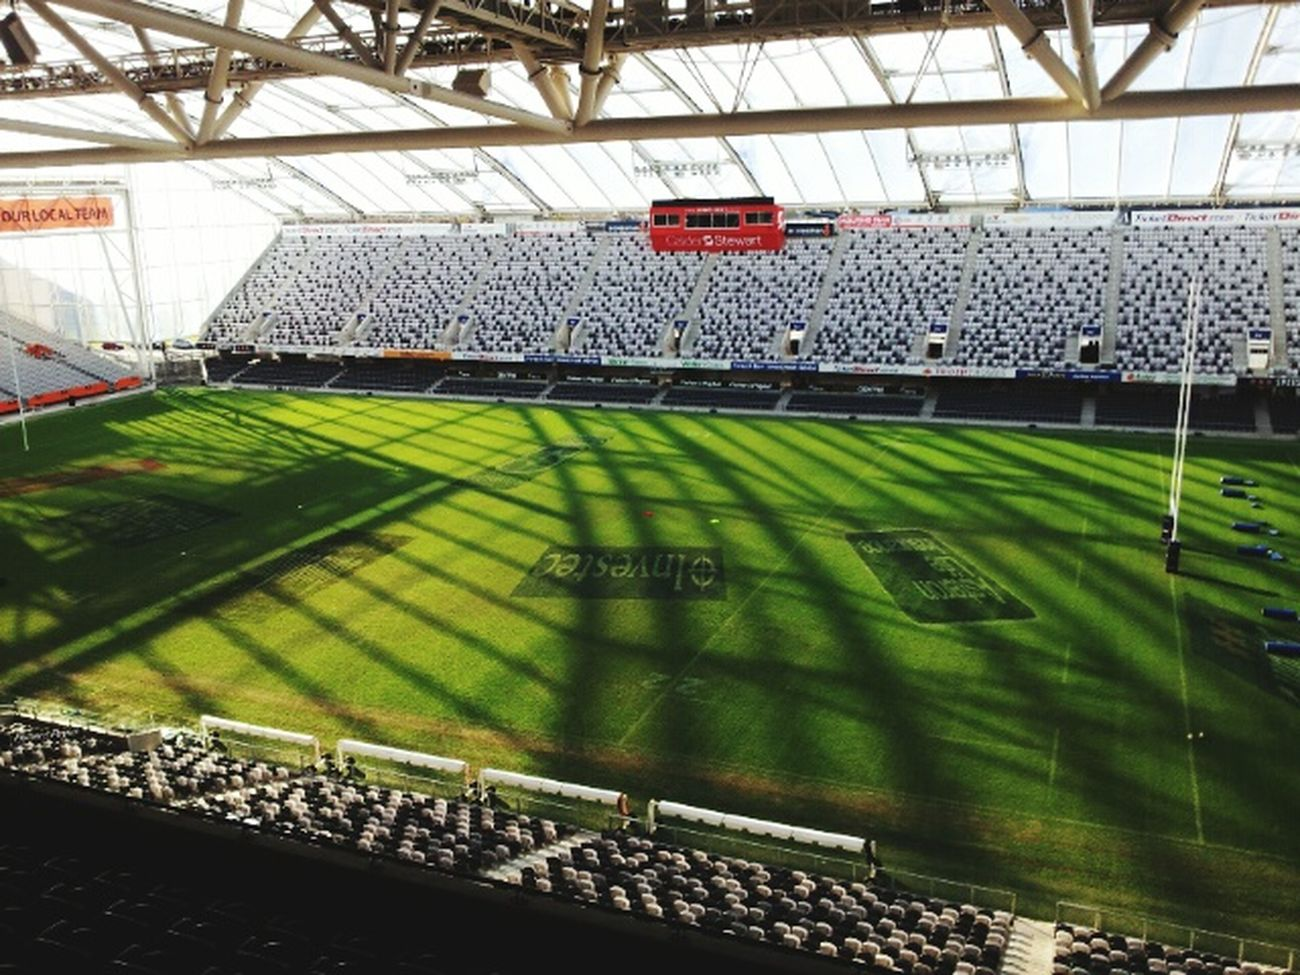 Dunedin New Zealand Forsyth Barr Stadium Rugby Highlanders Team Indoor Rugby Stadium Beautiful View